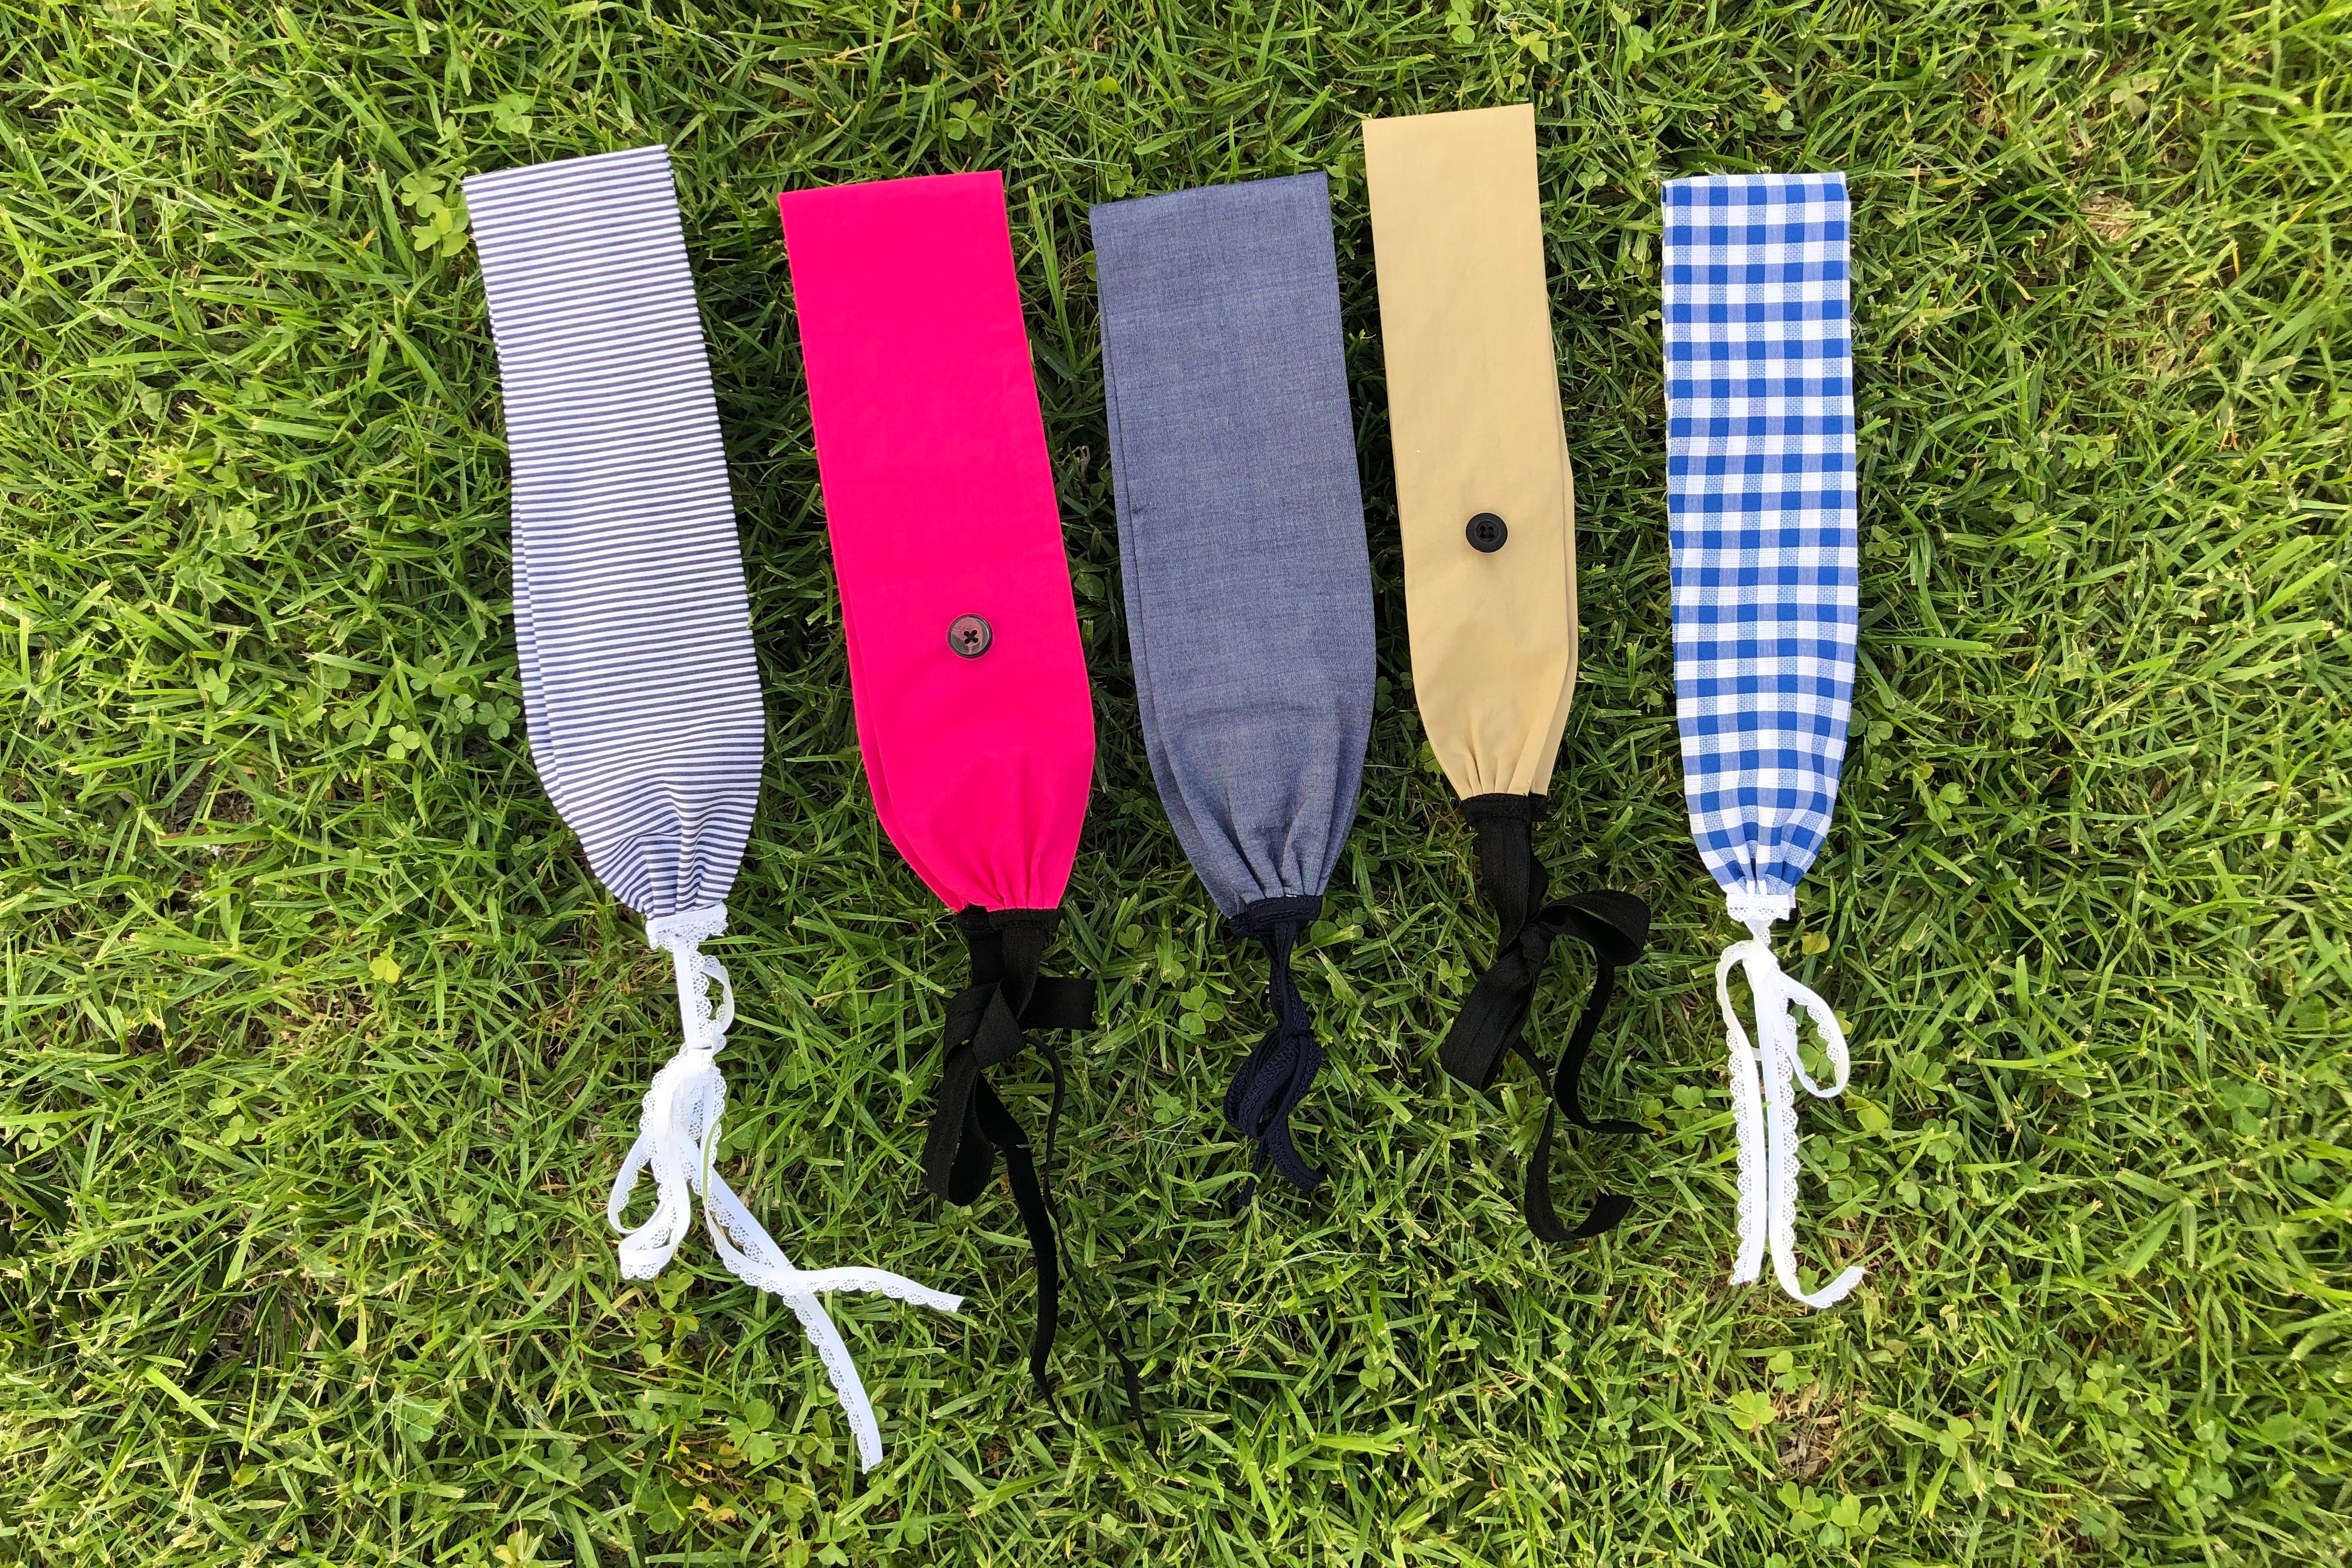 Five headbands lay flat in the grass.